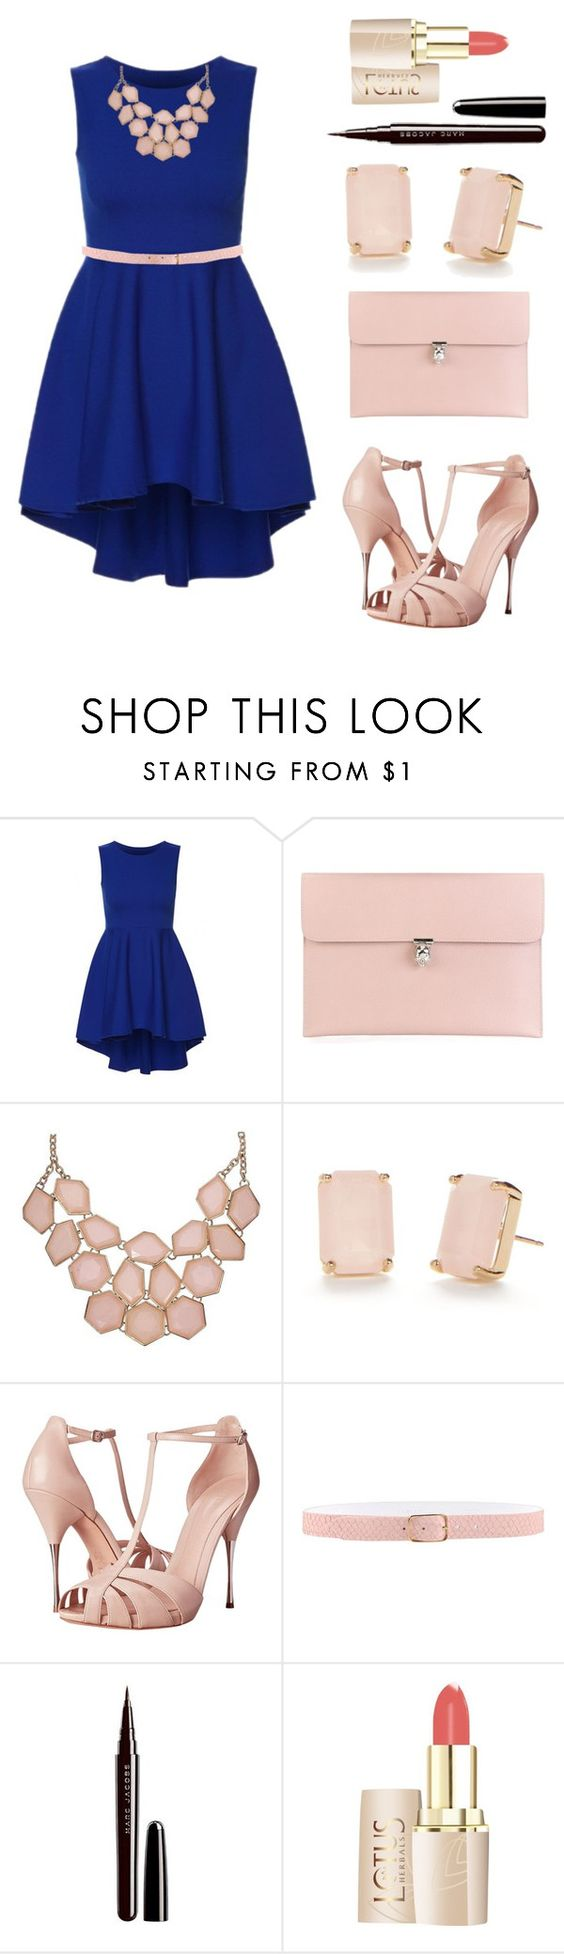 """Feminin Gal"" by narniandreamer ❤ liked on Polyvore featuring Alexander McQueen, Kate Spade, Orciani and Marc Jacobs"